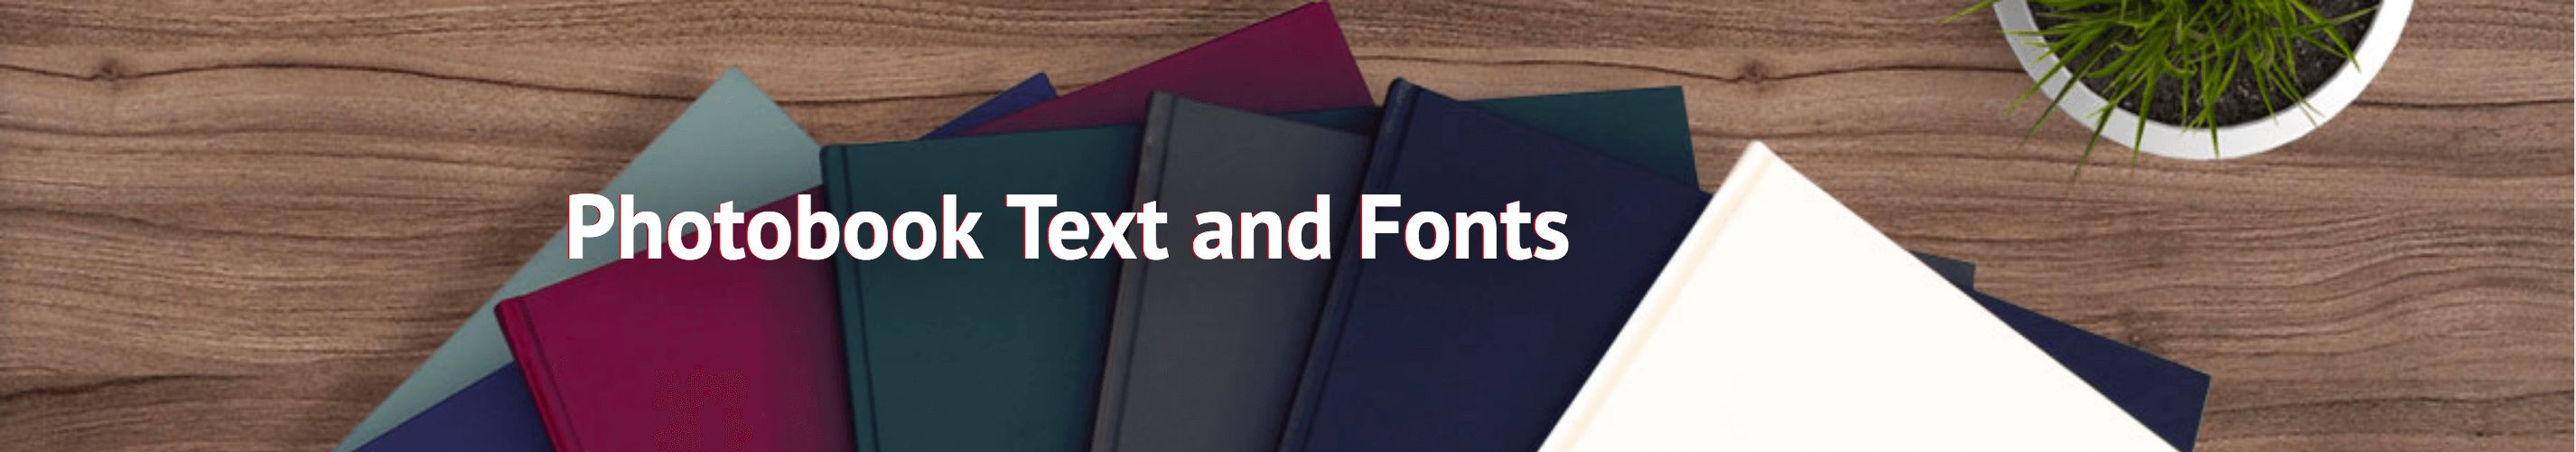 Photobook text and fonts